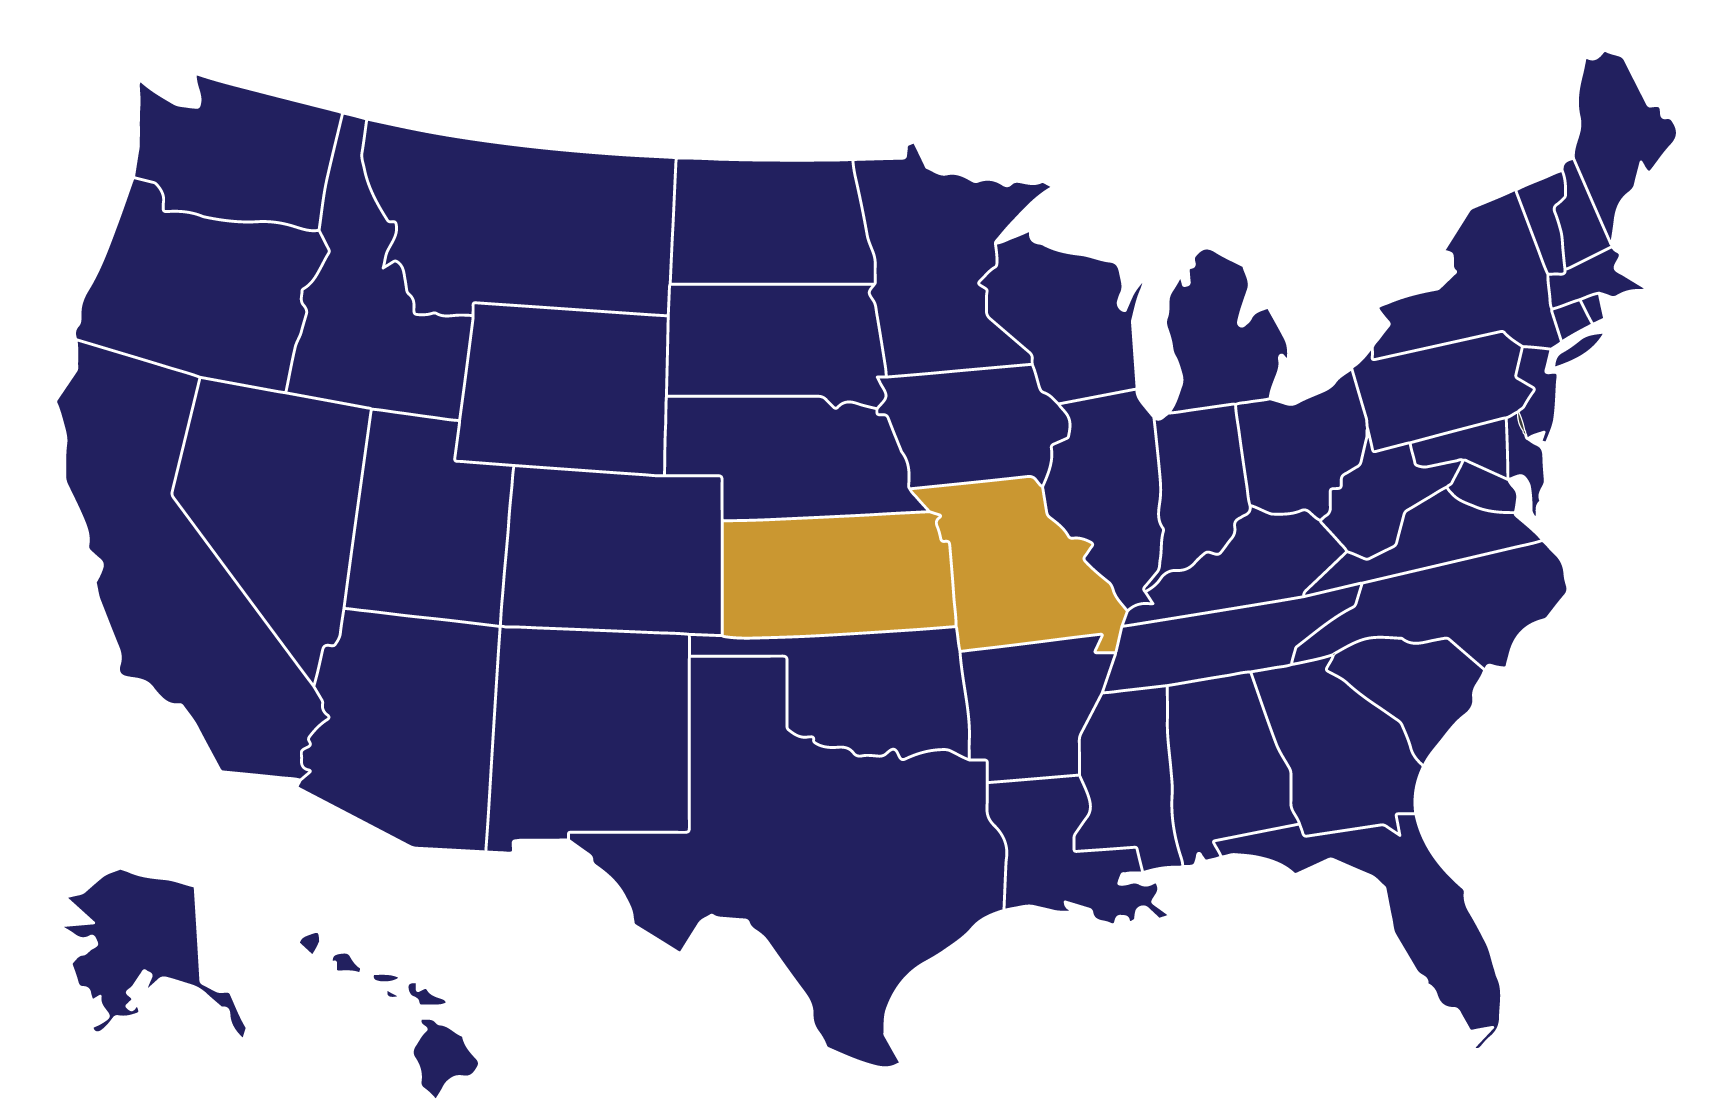 United States Map showing states that Omega Senior Living has community properties in which they manage.